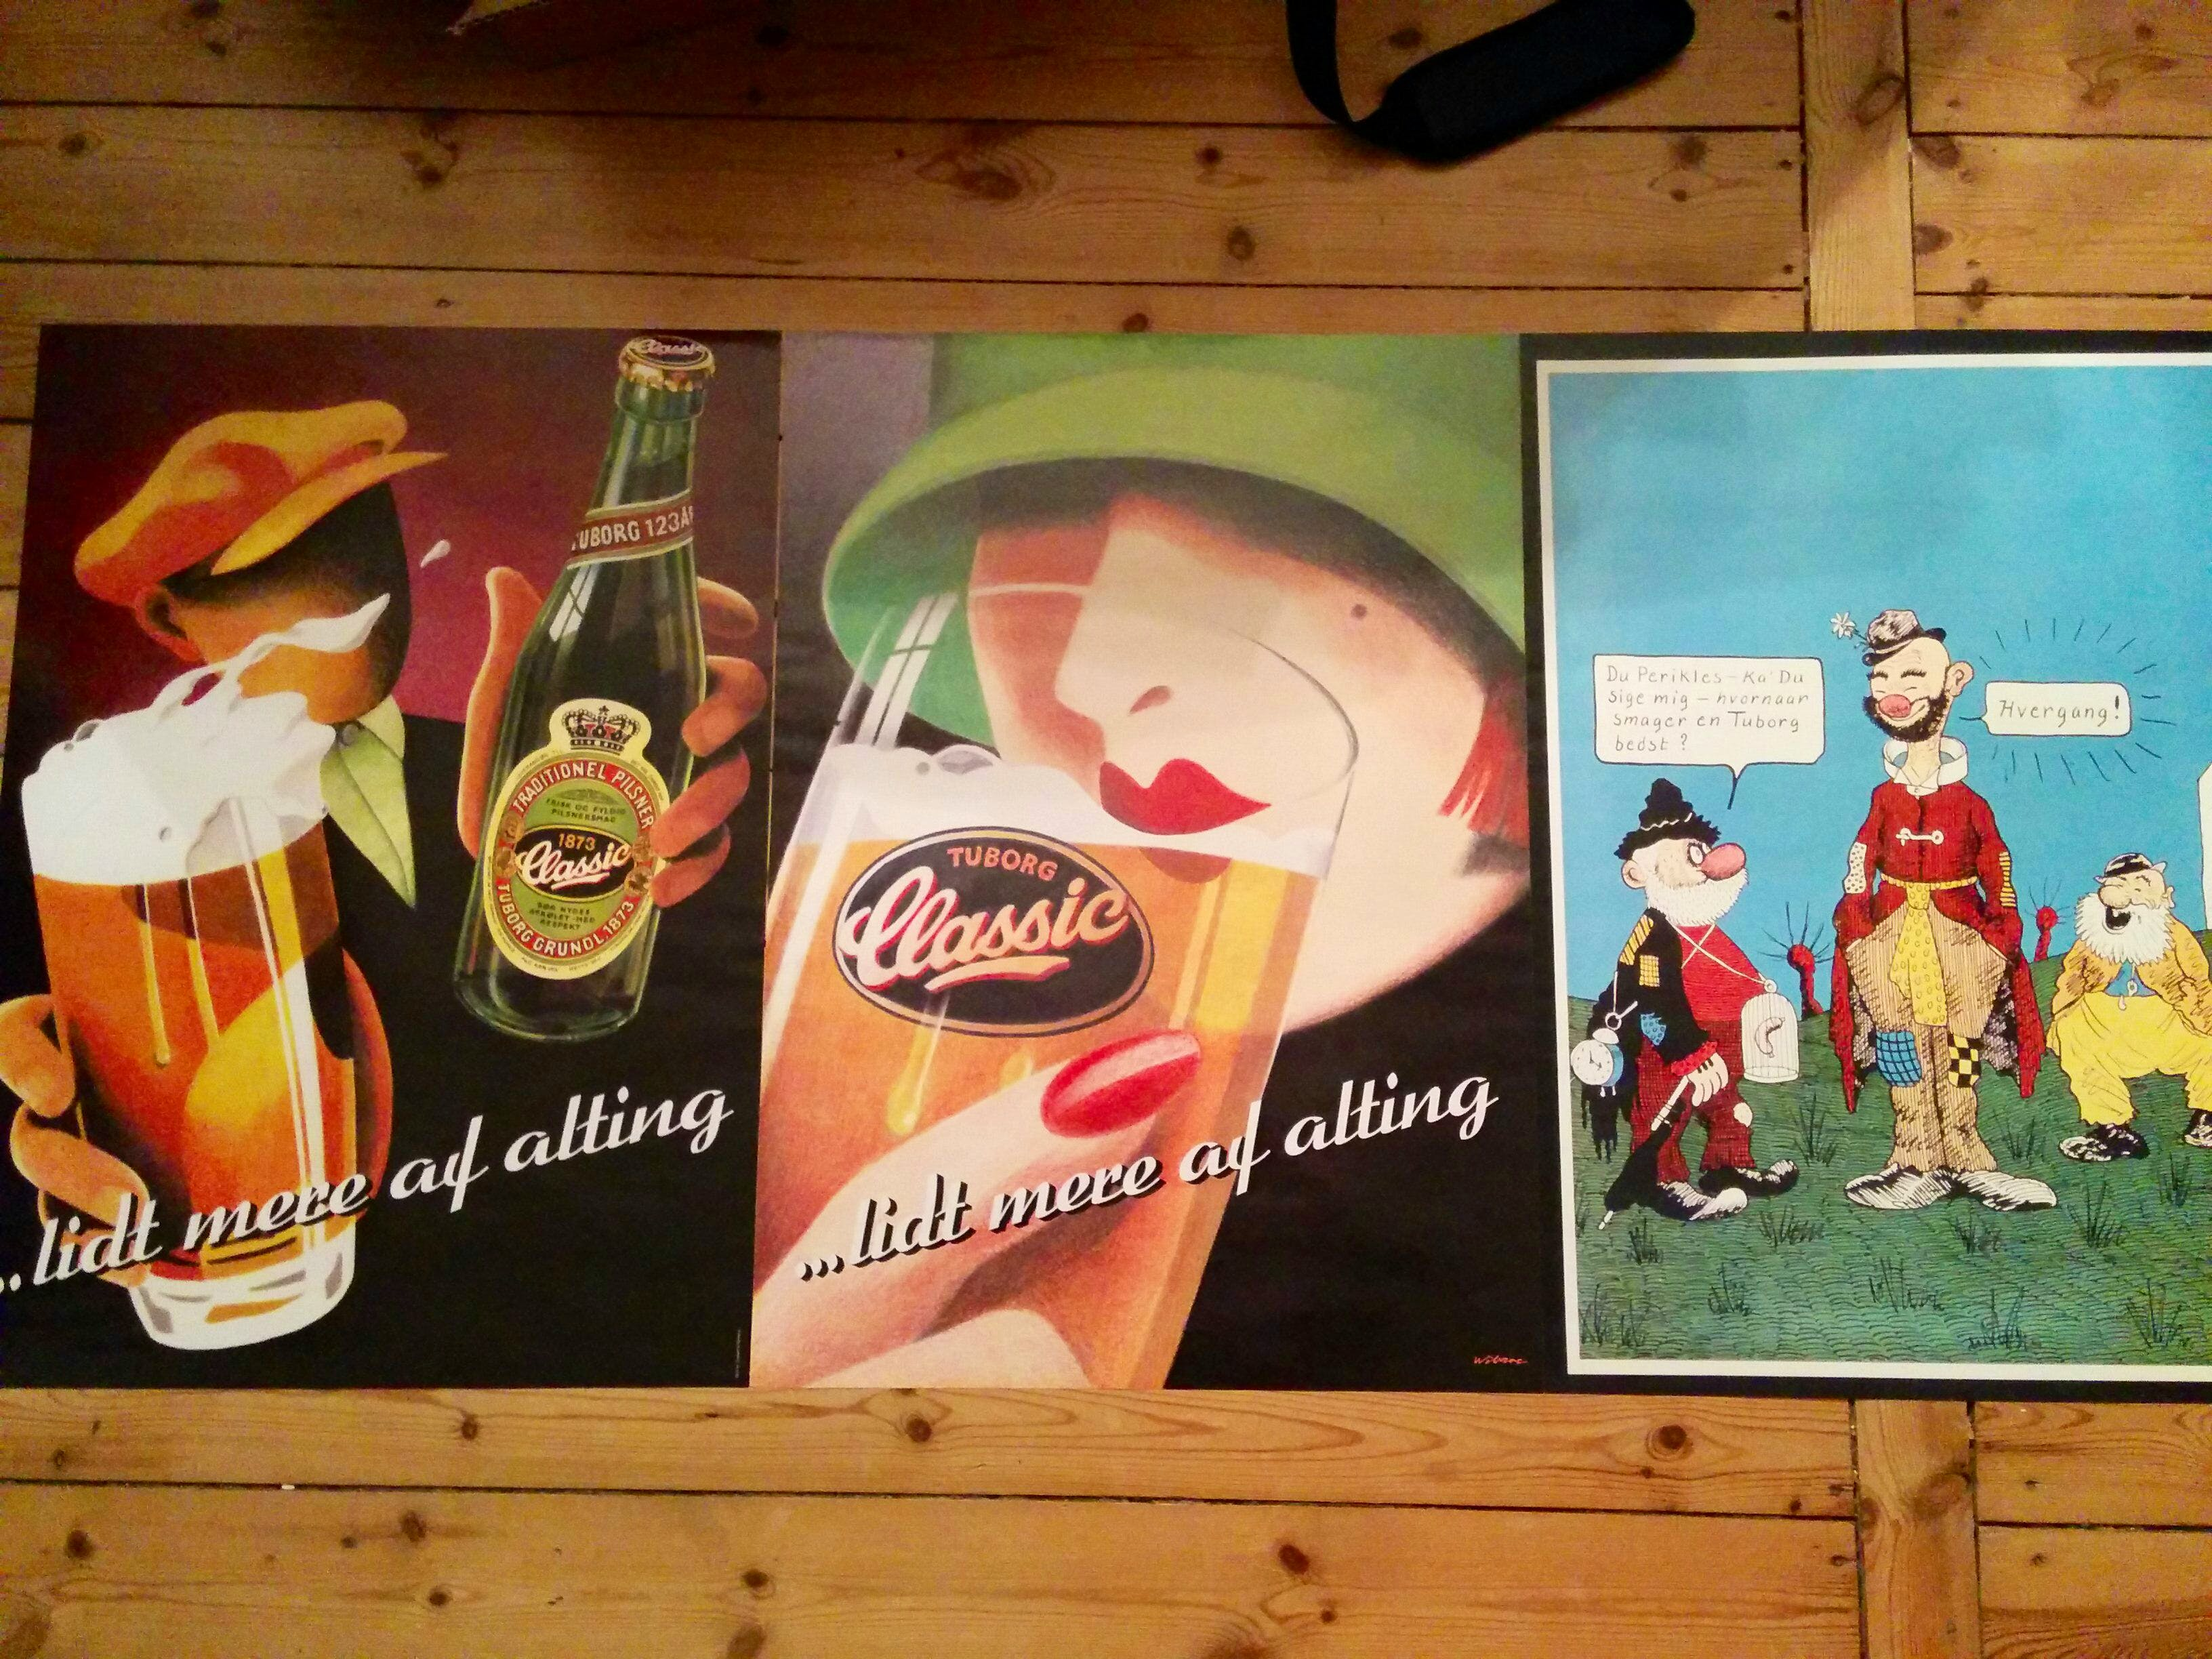 Tuborg posters